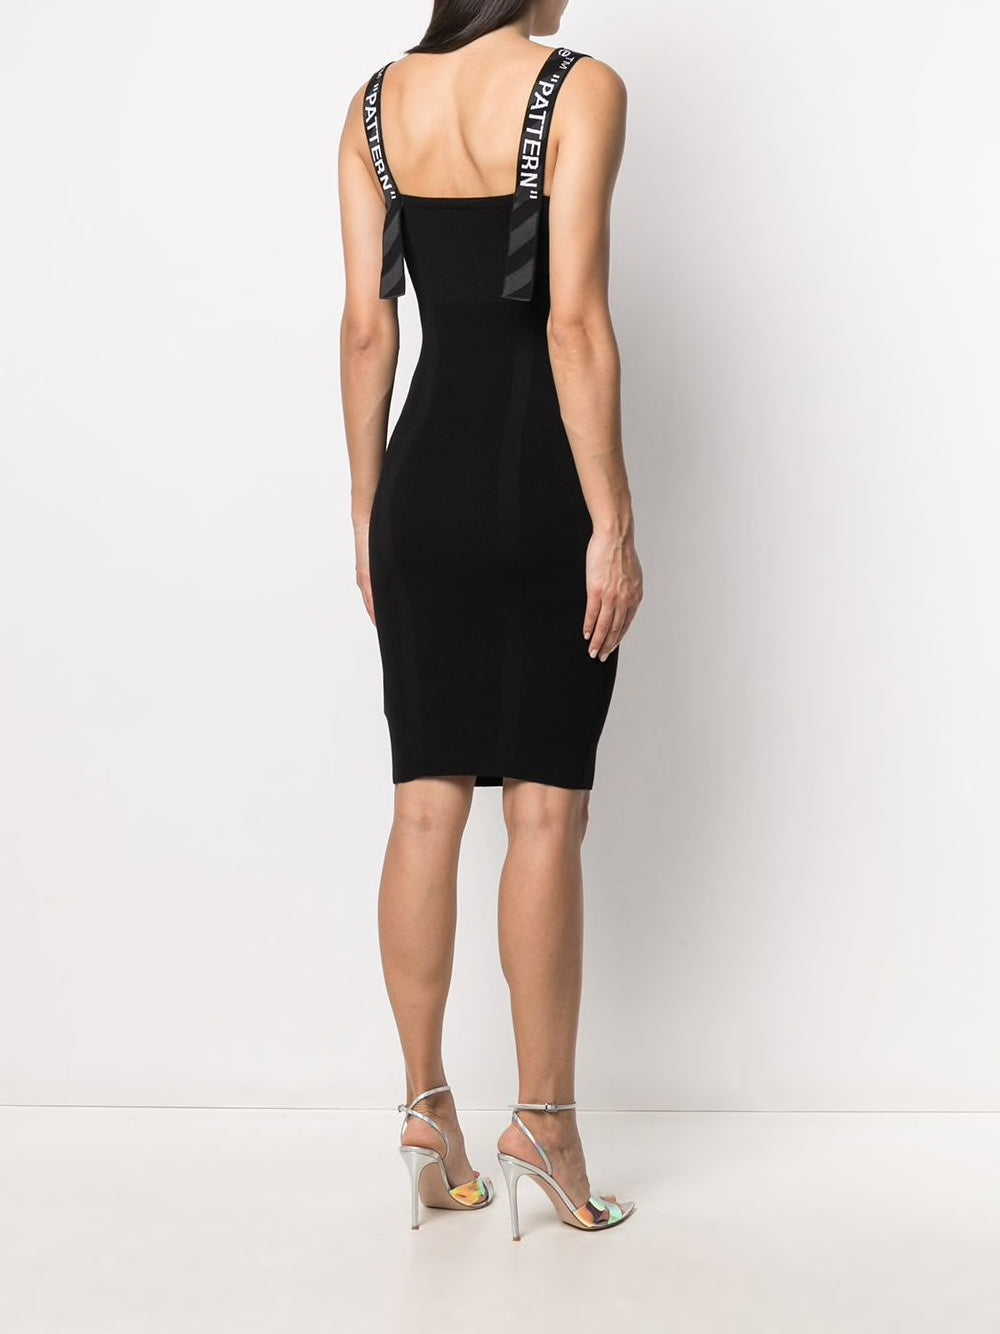 OFF-WHITE WOMEN BOLD SLEEVELESS DRESS